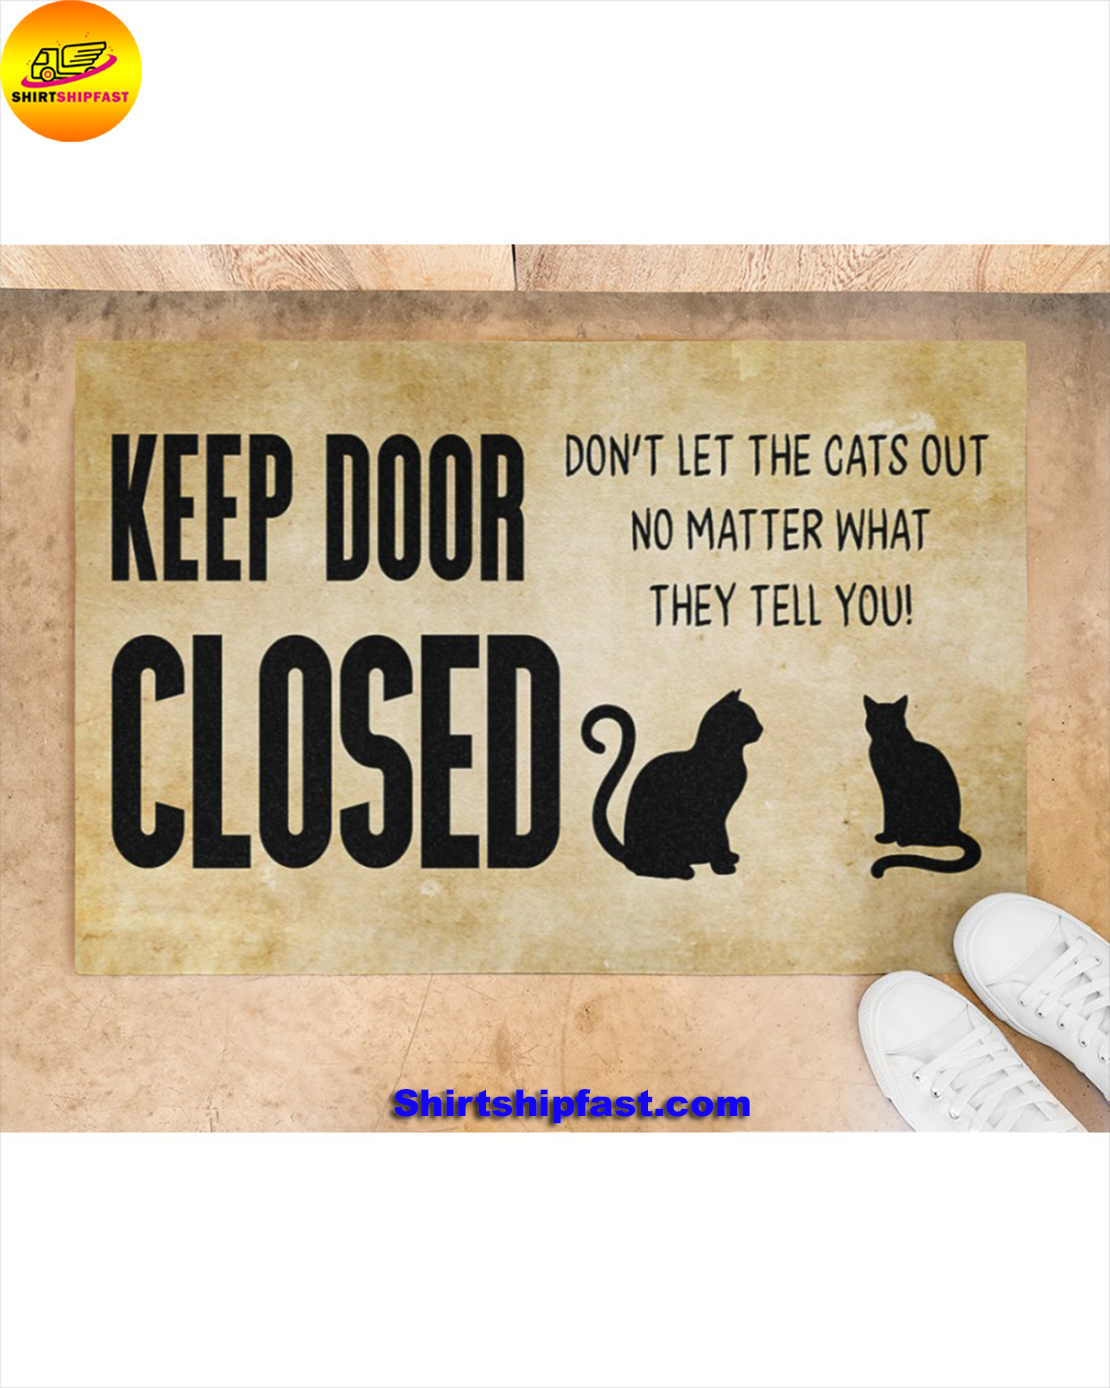 Keep door closed Don't let the cats out no matter what they tell you doormat - Picture 2